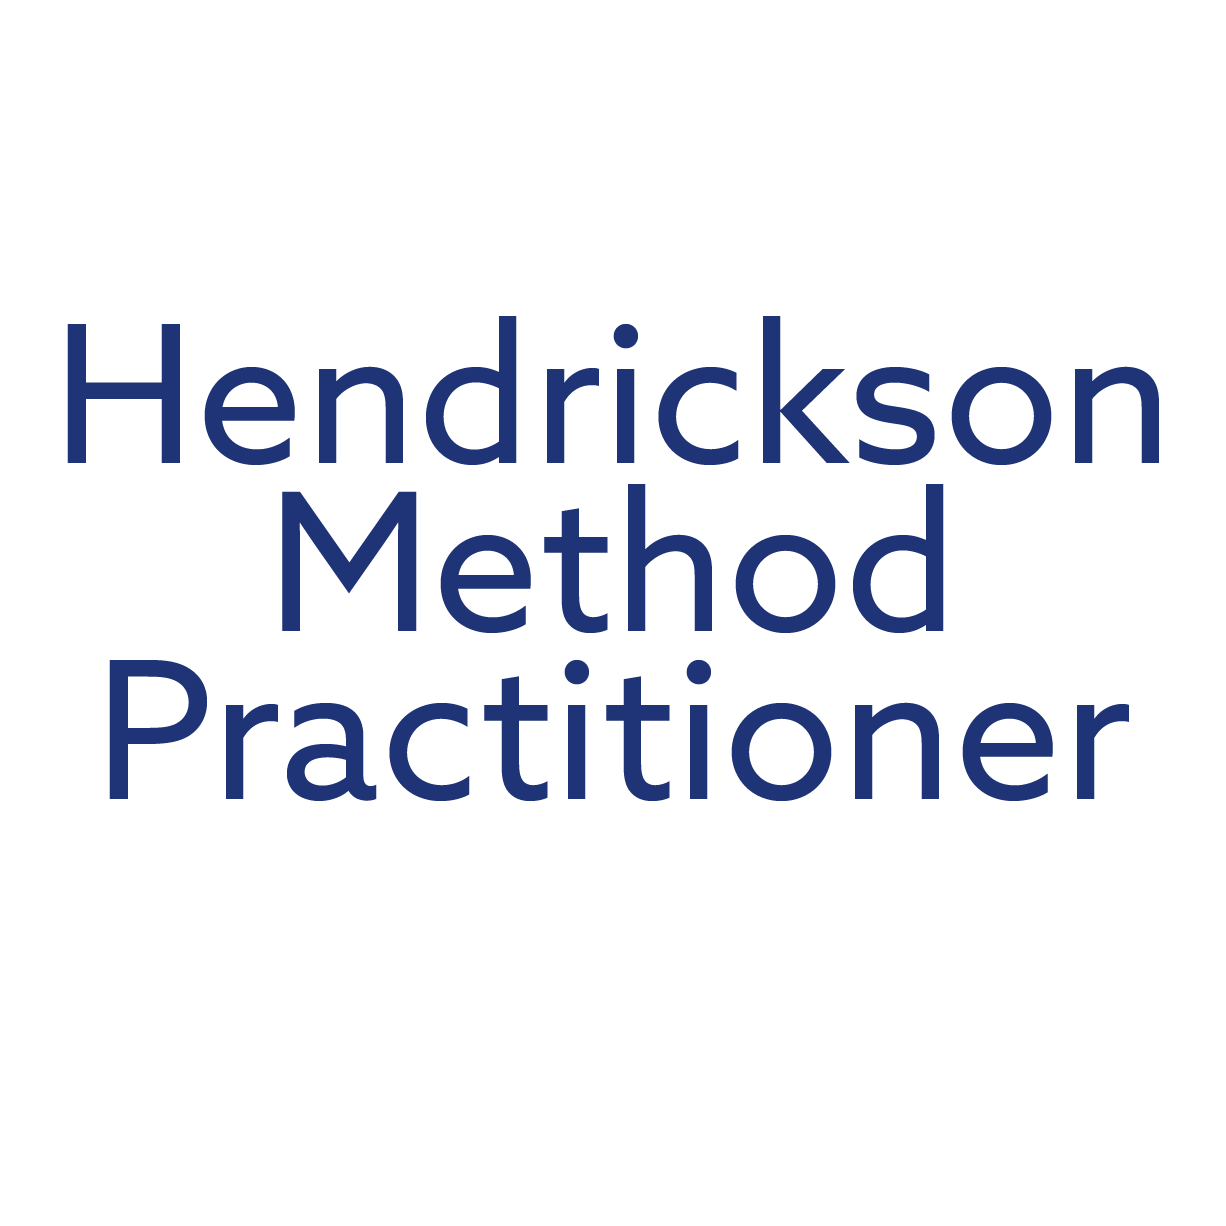 The Hendrickson method is a remarkable, advanced technique that blends massage, manual therapy and Eastern energy healing. Hendrickson Method is a dynamic and effective alternative to traditional therapies. The results are profound; significant relief from pain, dramatically enhanced range of movements, improved athletic performance and extraordinary relaxation.